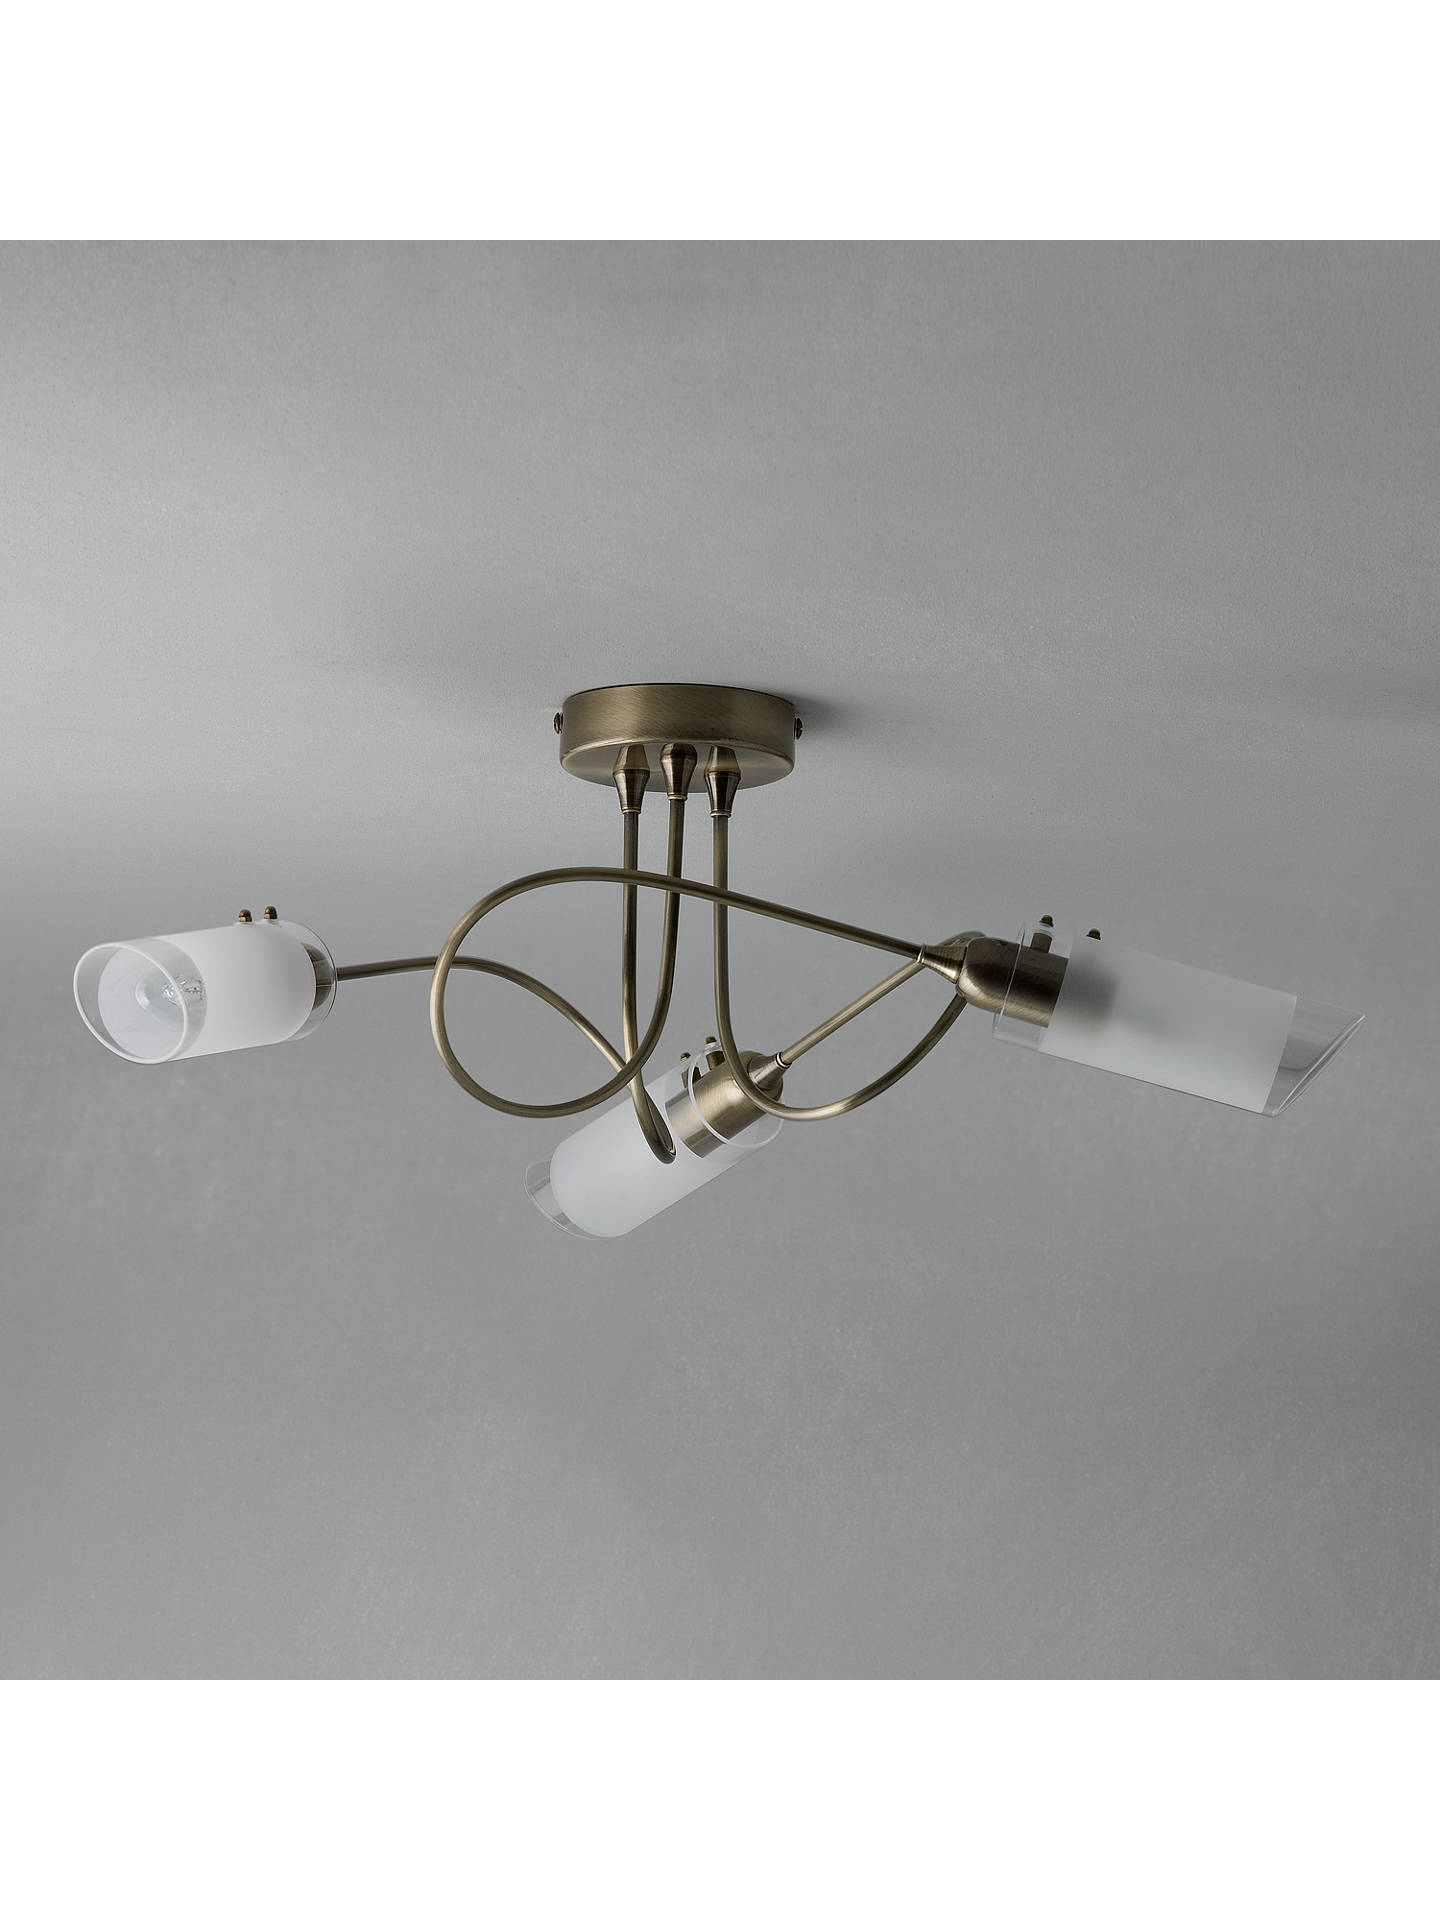 BuyJohn Lewis & Partners Limbo Ceiling Light, 3 Arm, Antiqued Brass Online at johnlewis.com